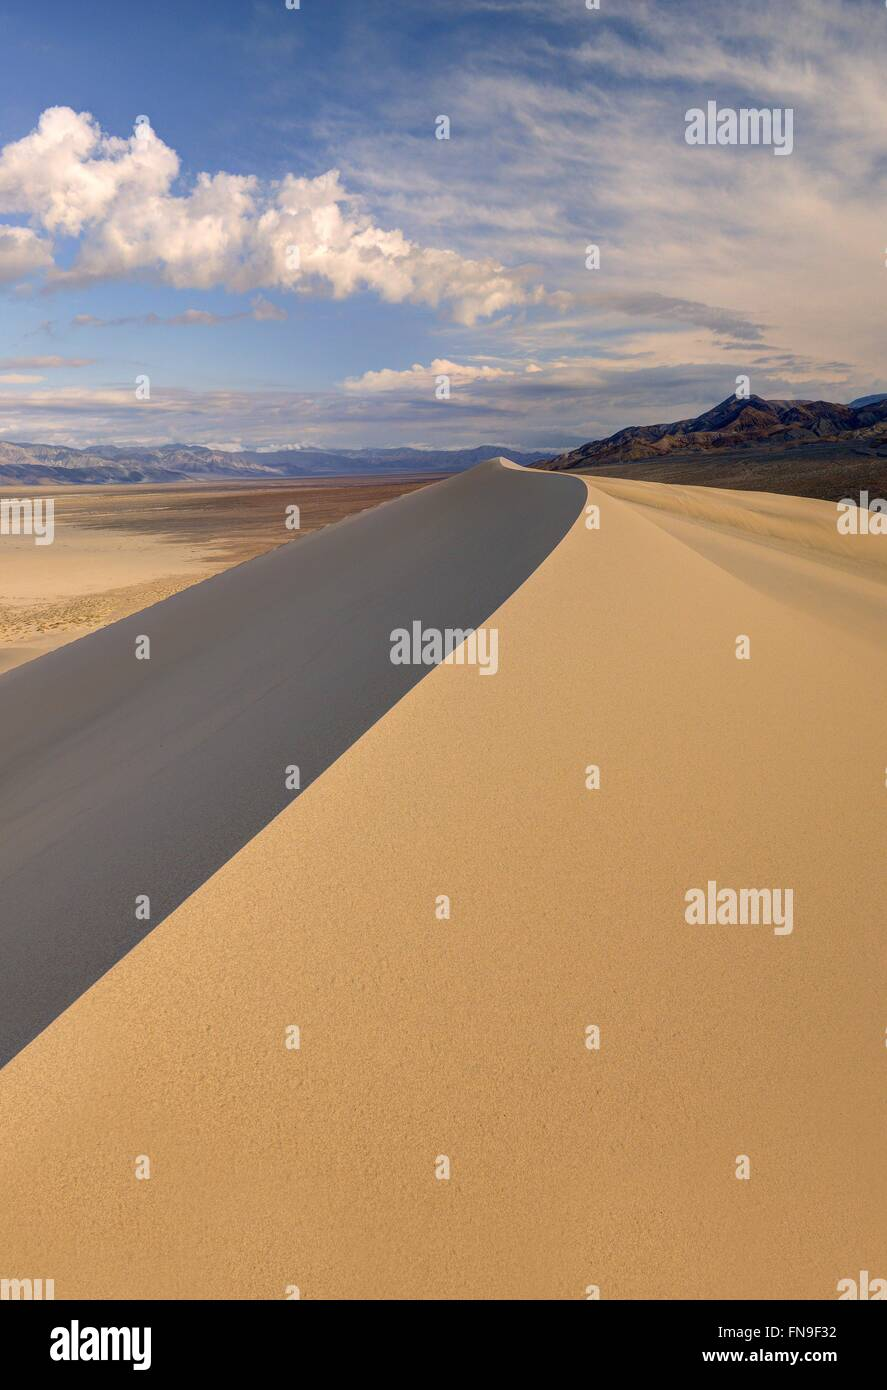 Eureka Sand Dunes, Death Valley National Park, California, America, USA - Stock Image